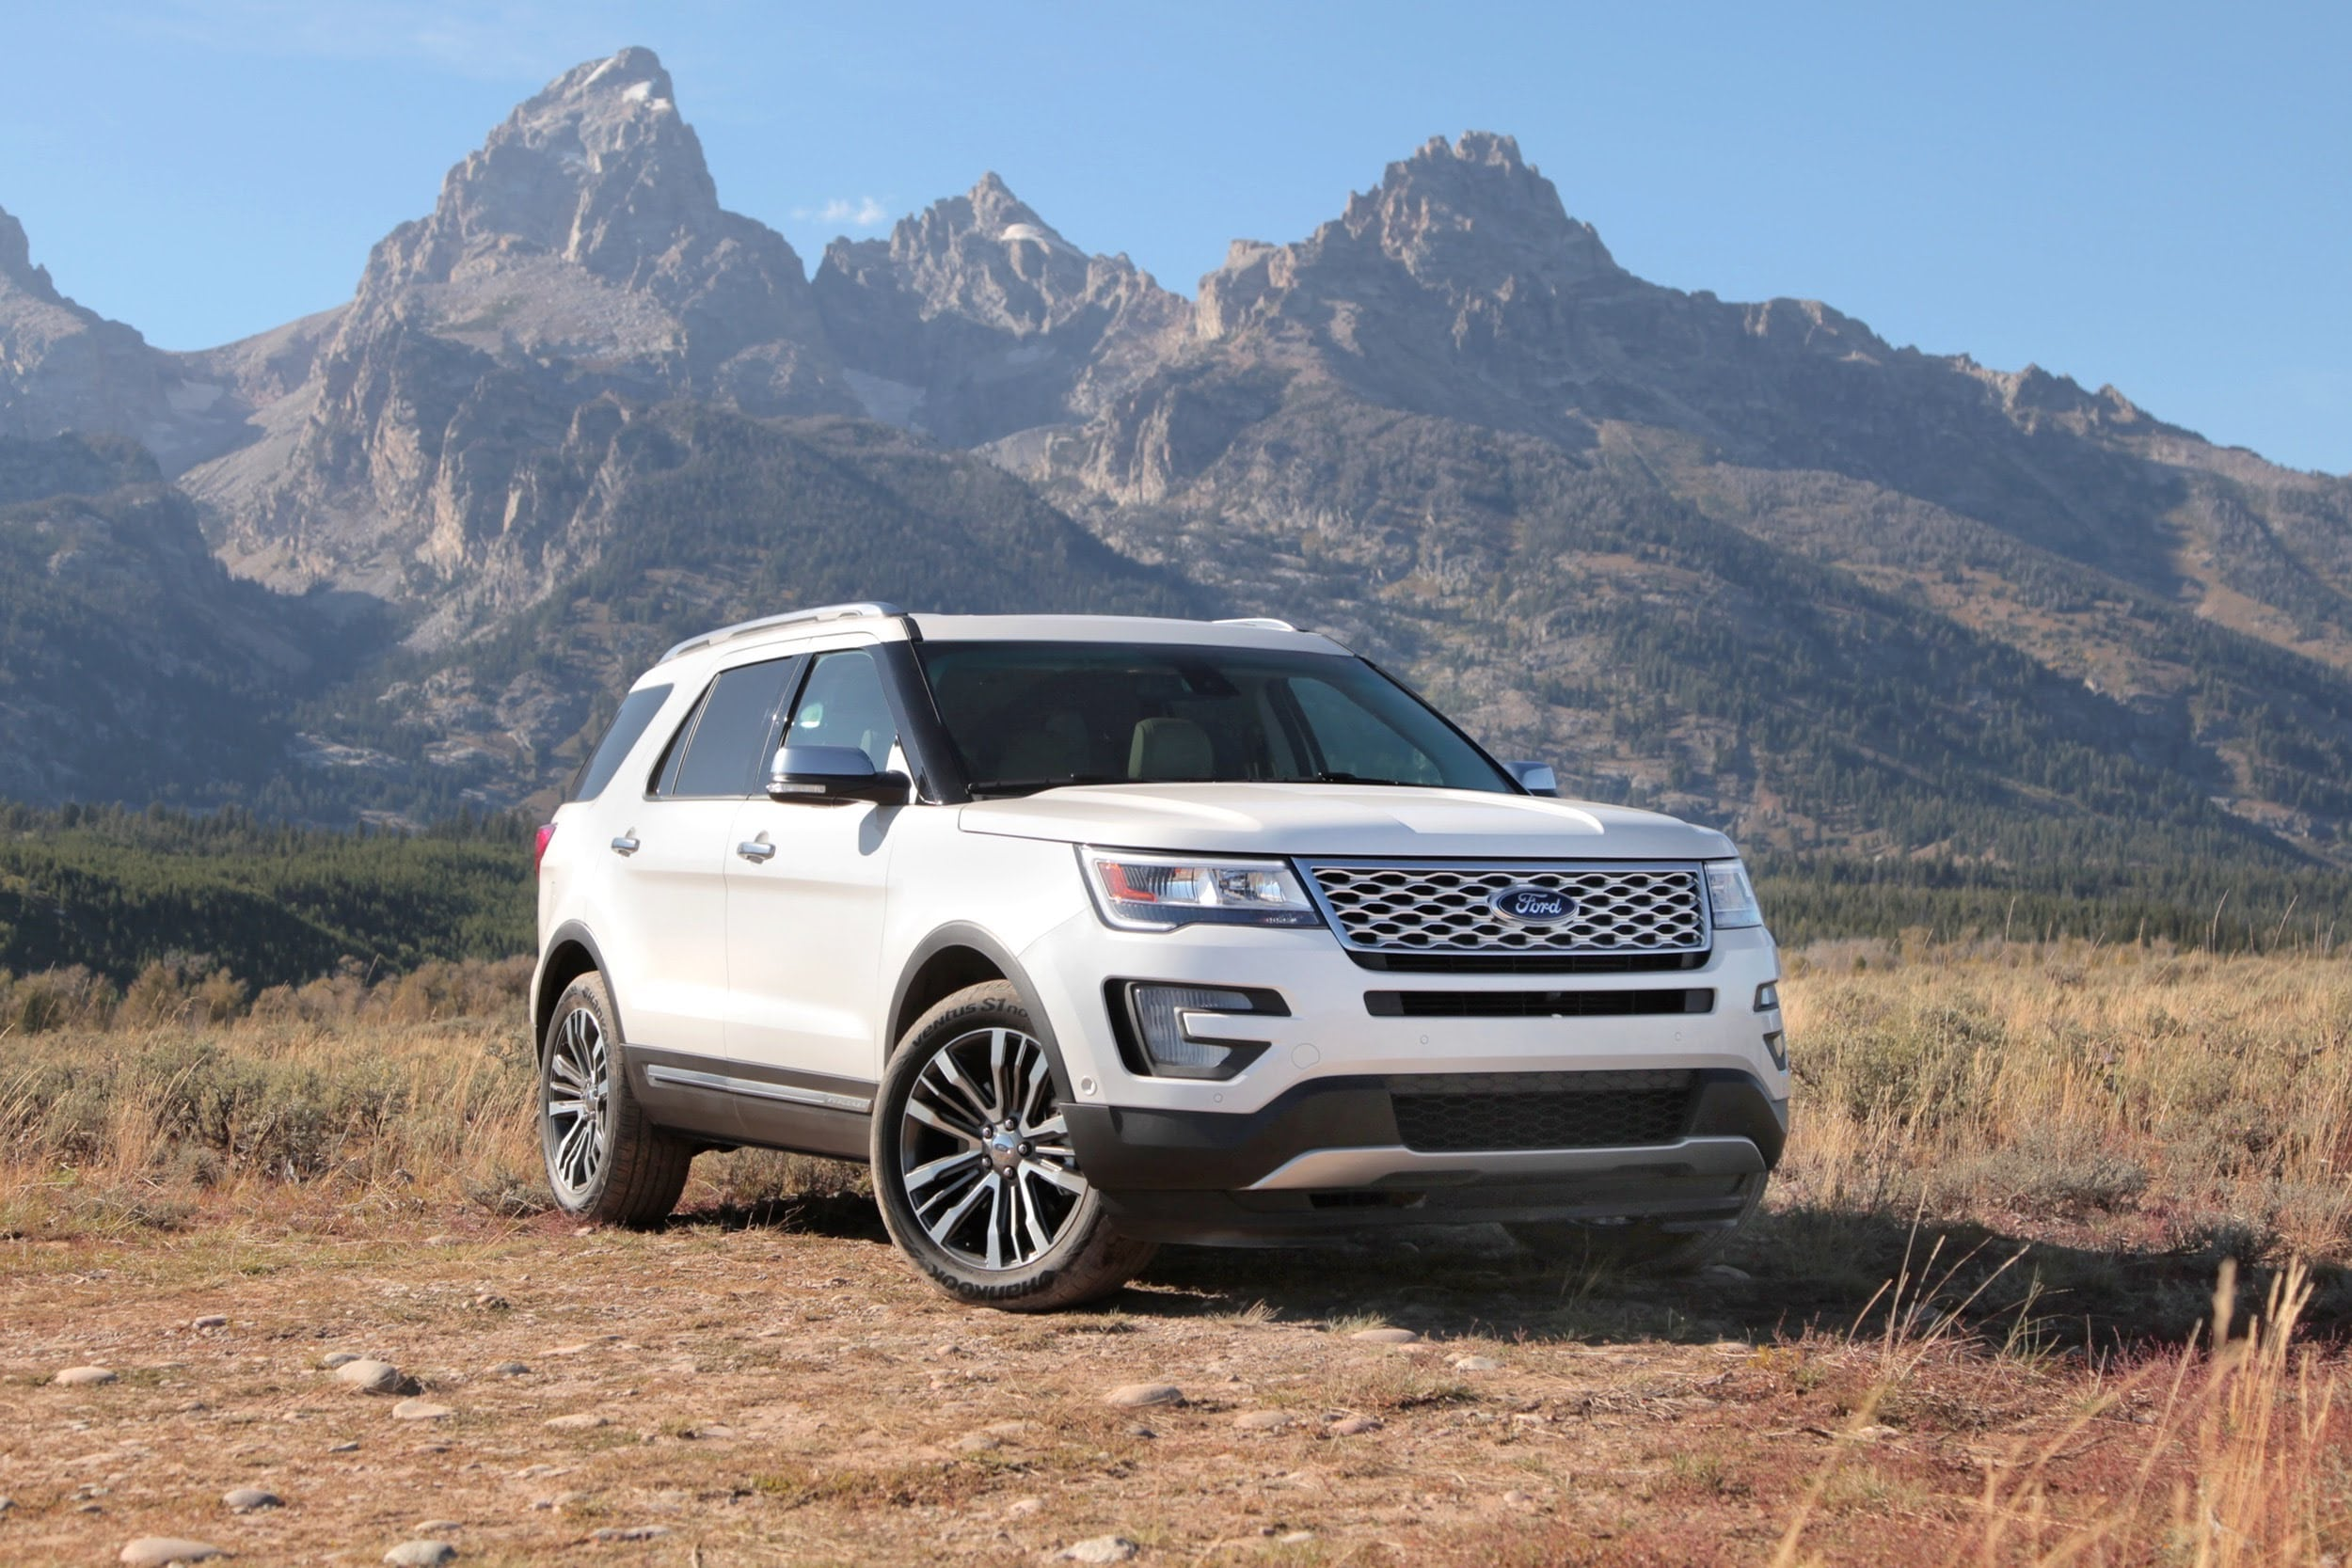 Ford Explorer Widescreen